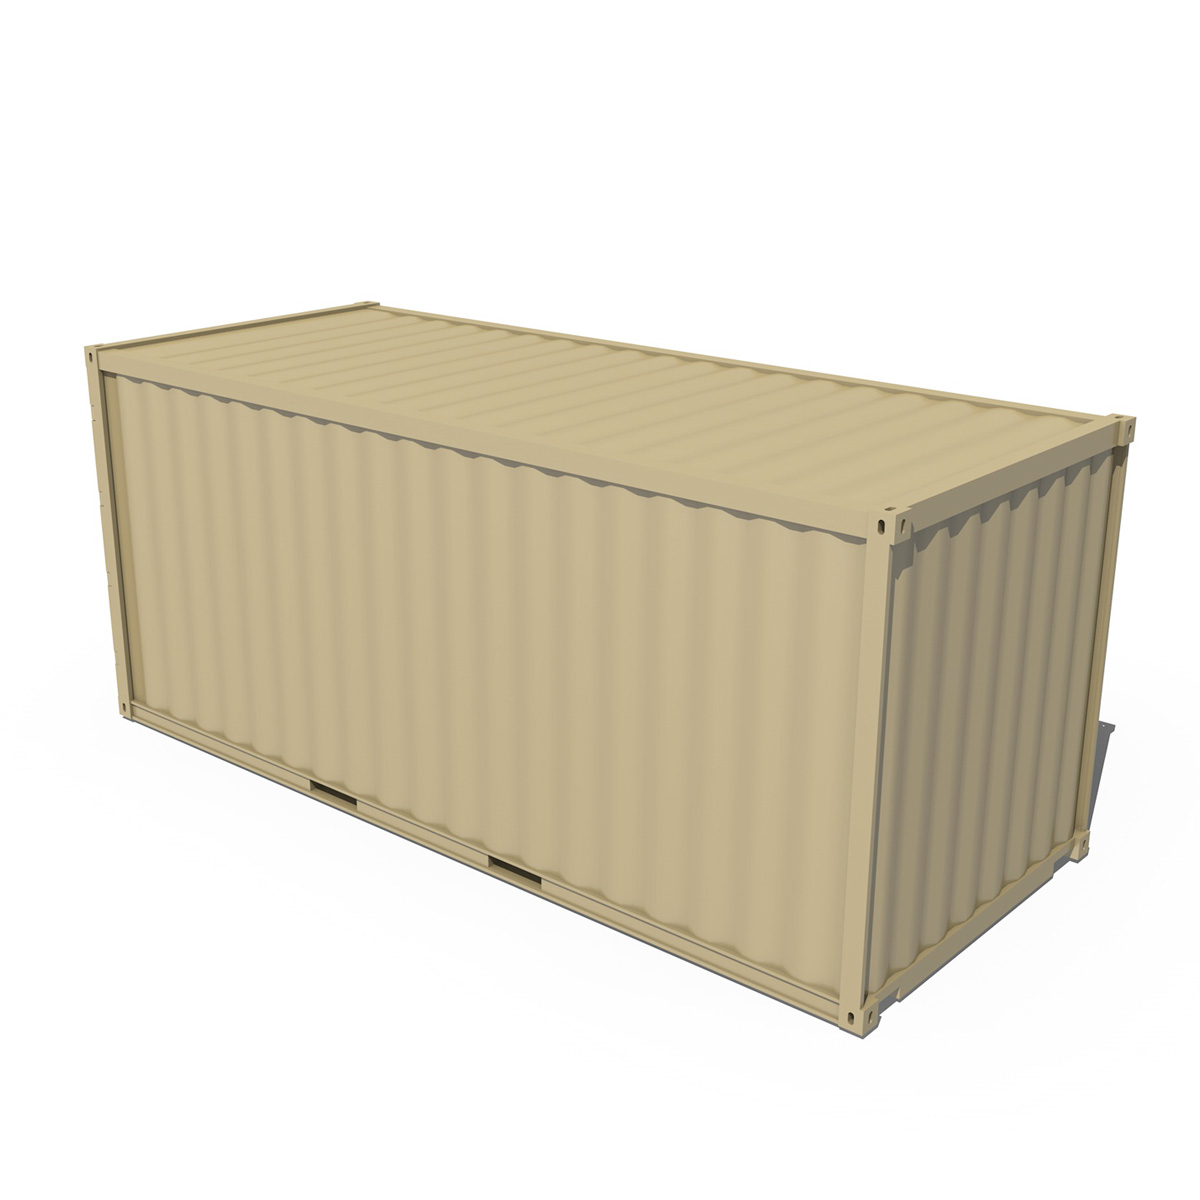 20ft shipping container 3d model 3ds fbx c4d lwo obj 252257